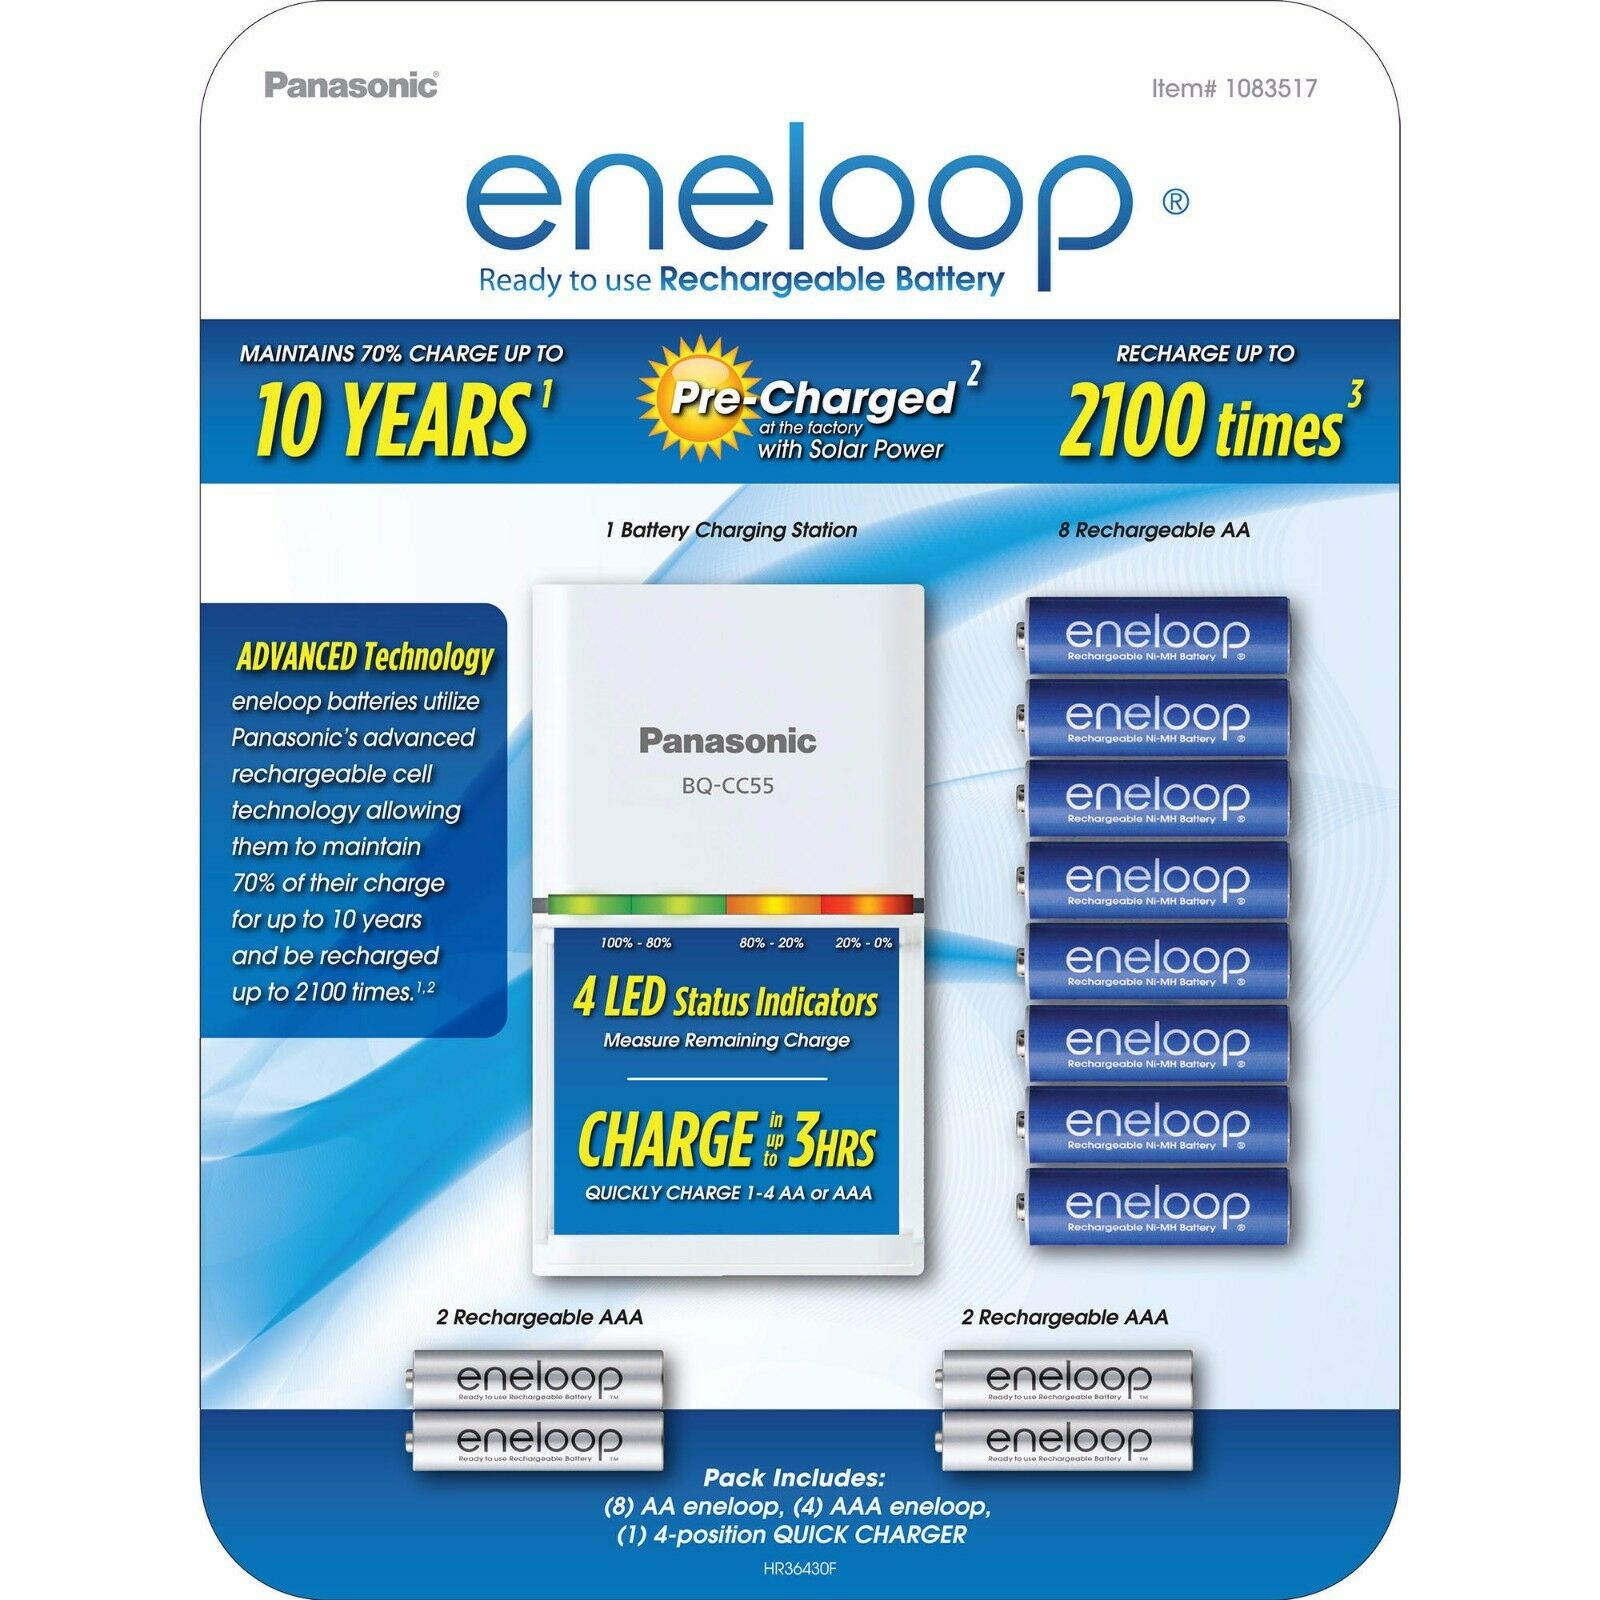 Panasonic Eneloop Rechargeable 12 Battery Kit 8 AA, 4 AAA An